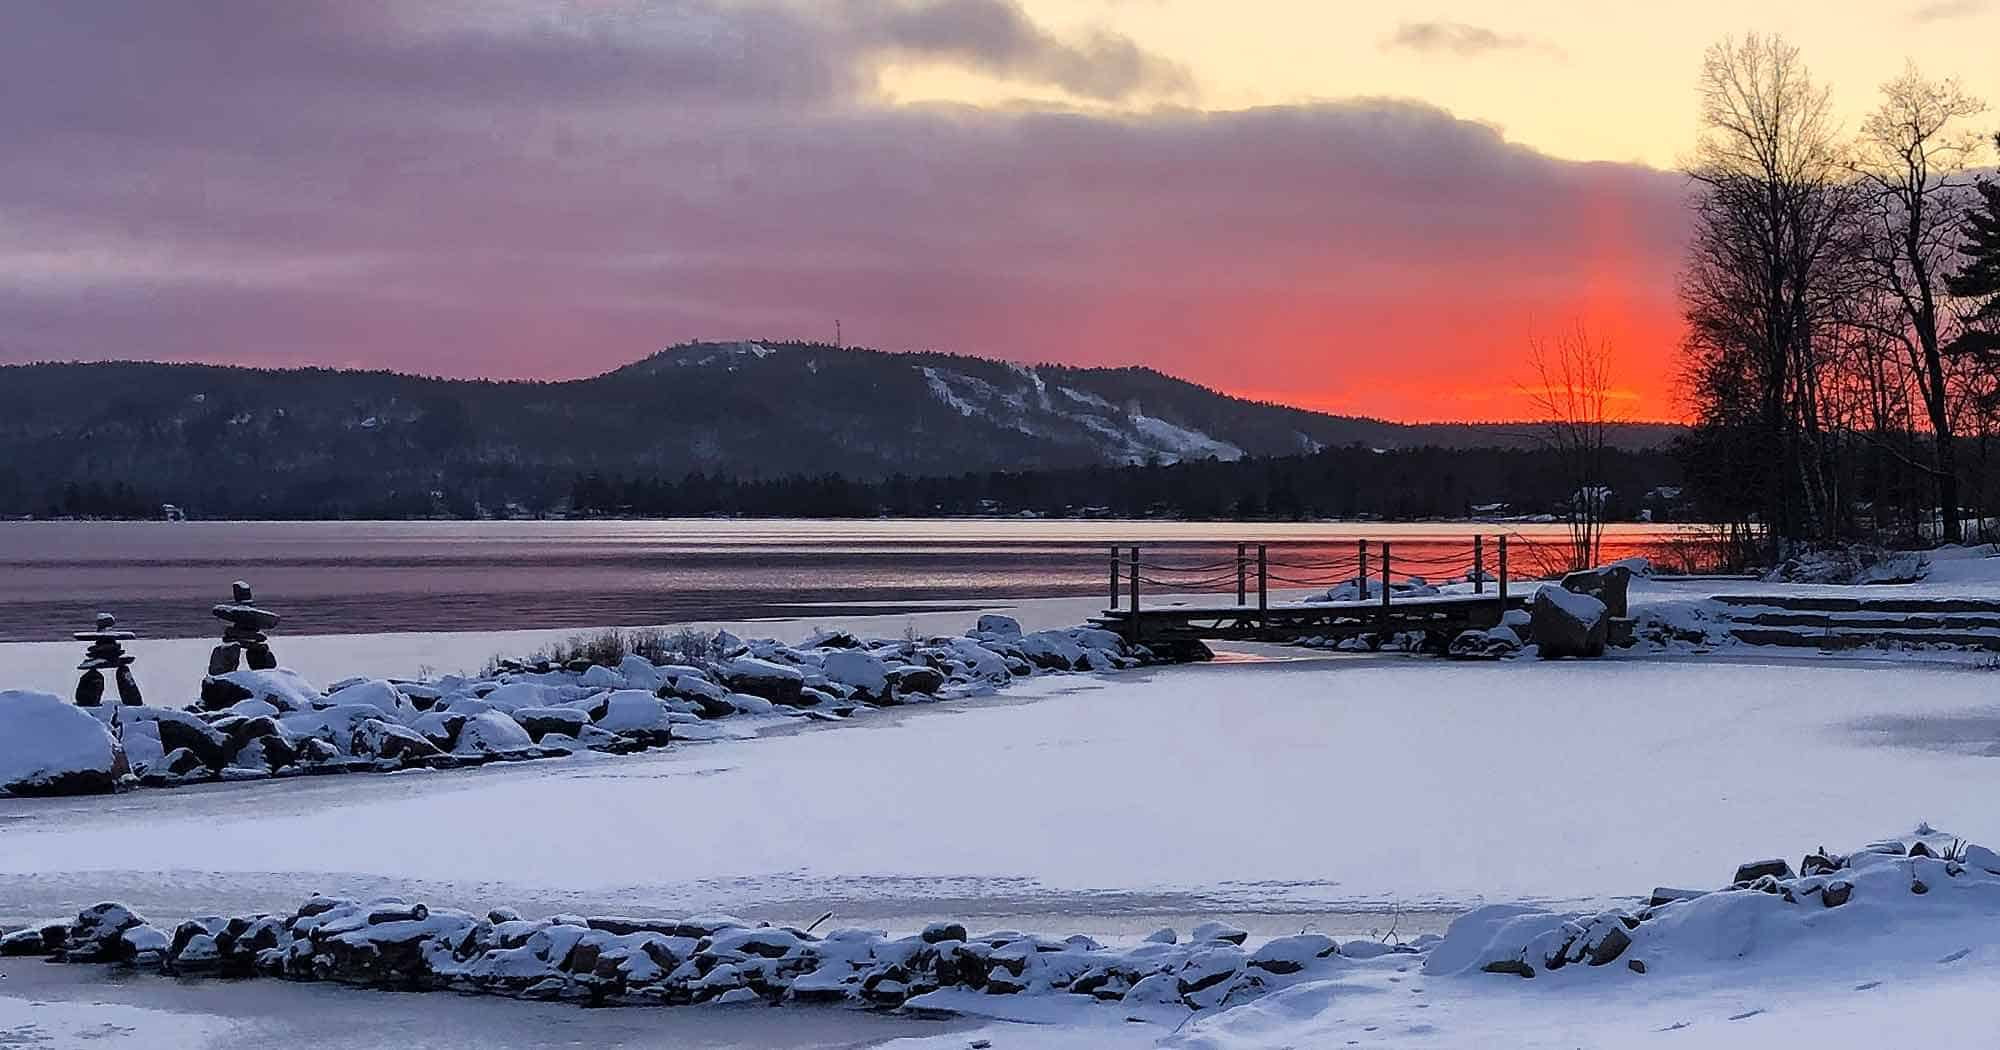 Beach area in winter with sunset over Dickson Mountain